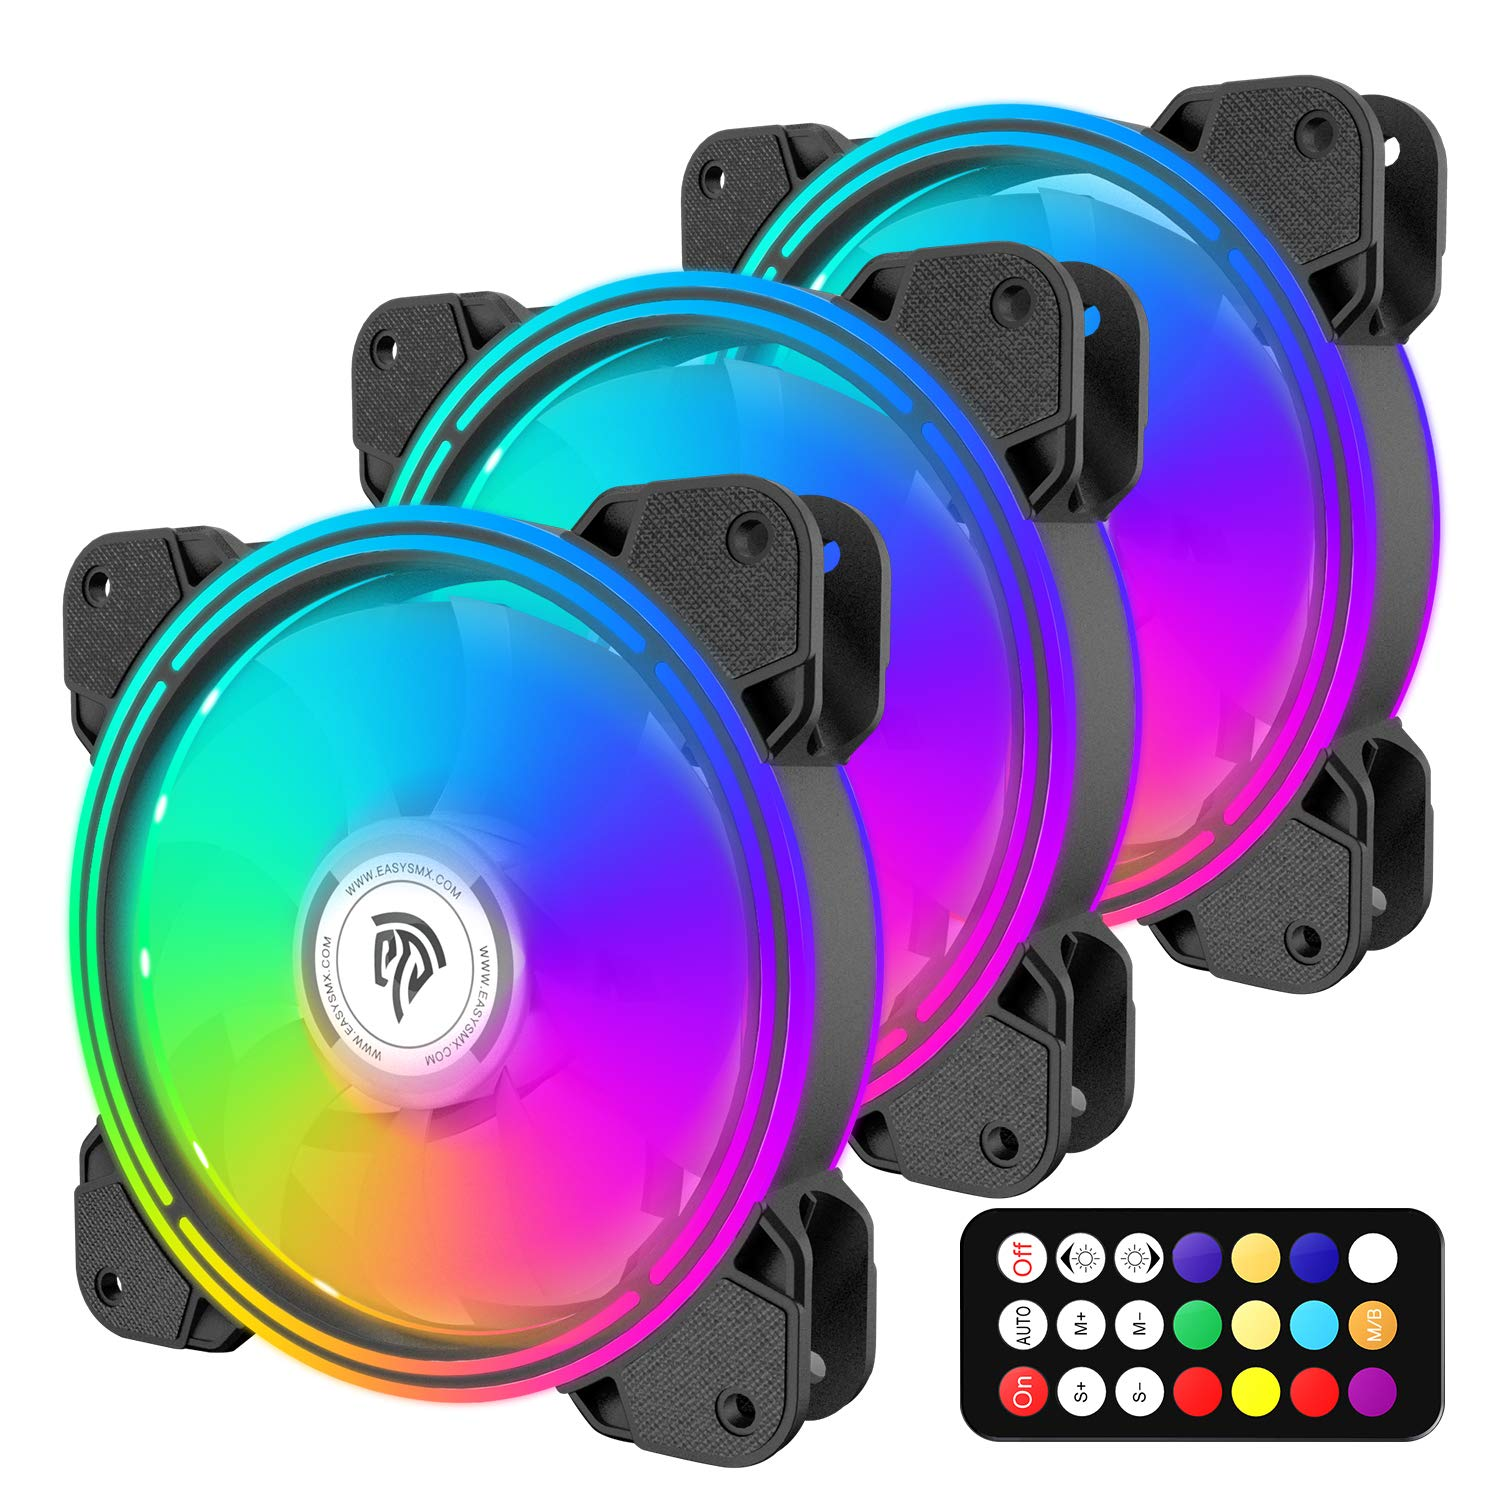 EasySMX RGB Case Fans, 3 Pack 120mm Quiet Computer Cooling PC Fans, PWM Control for Computer Case, 5V ARGB Addressable Motherboard SYNC Controller, Colorful Cooler Speed Adjustable Remote Control